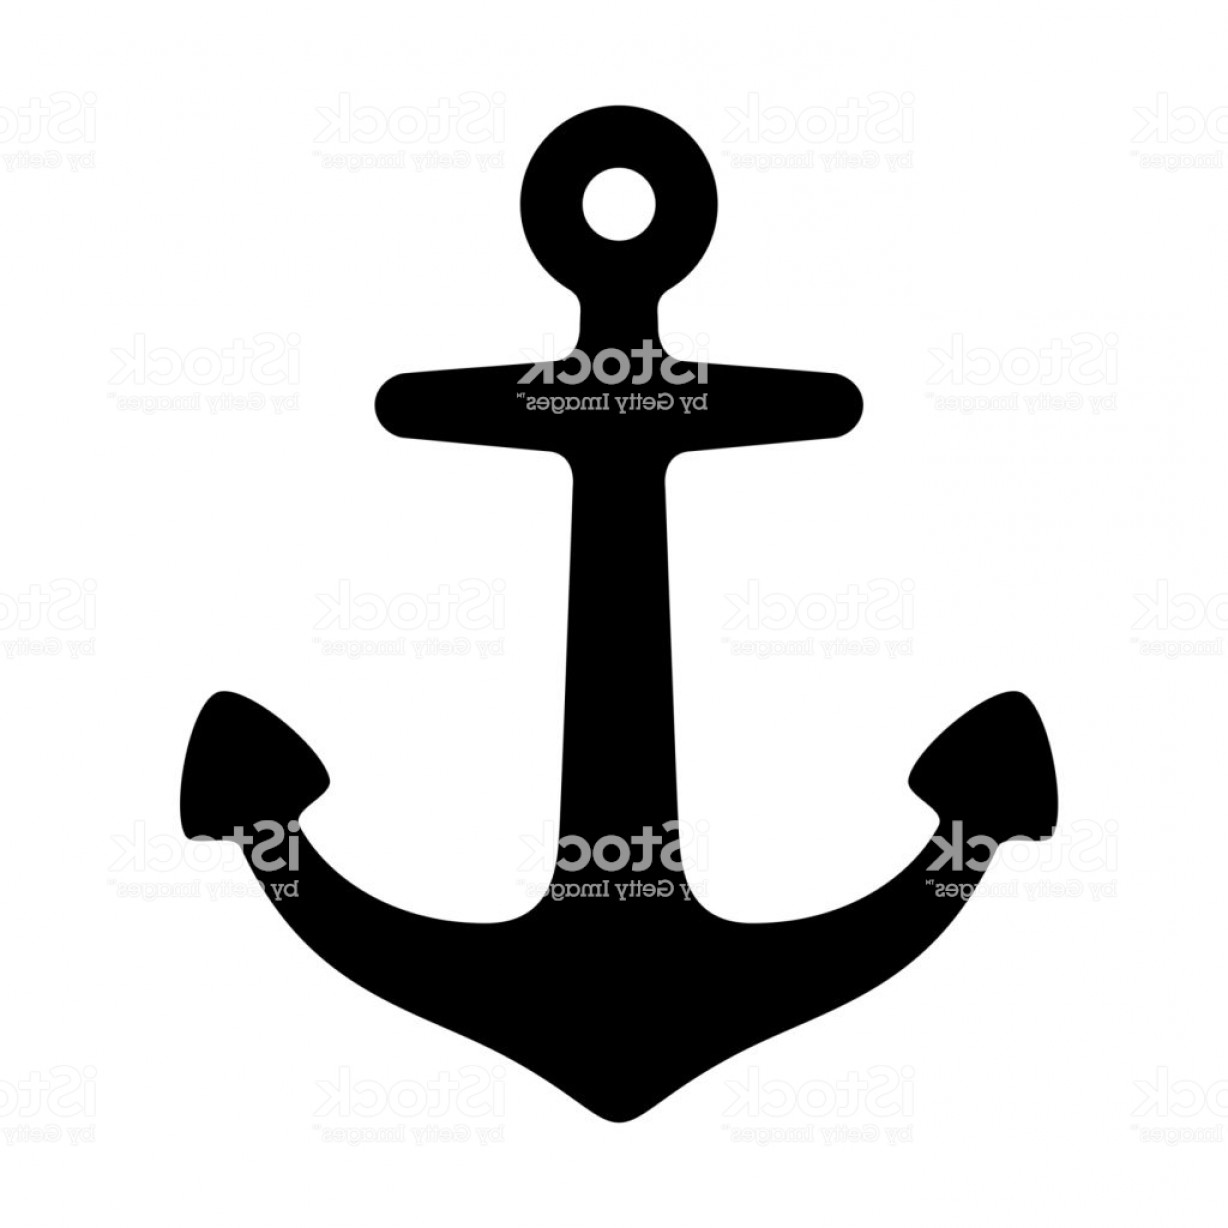 Boat Vector Art Graphics: Anchor Vector Icon Logo Boat Pirate Maritime Nautical Illustration Symbol Clip Art Gm